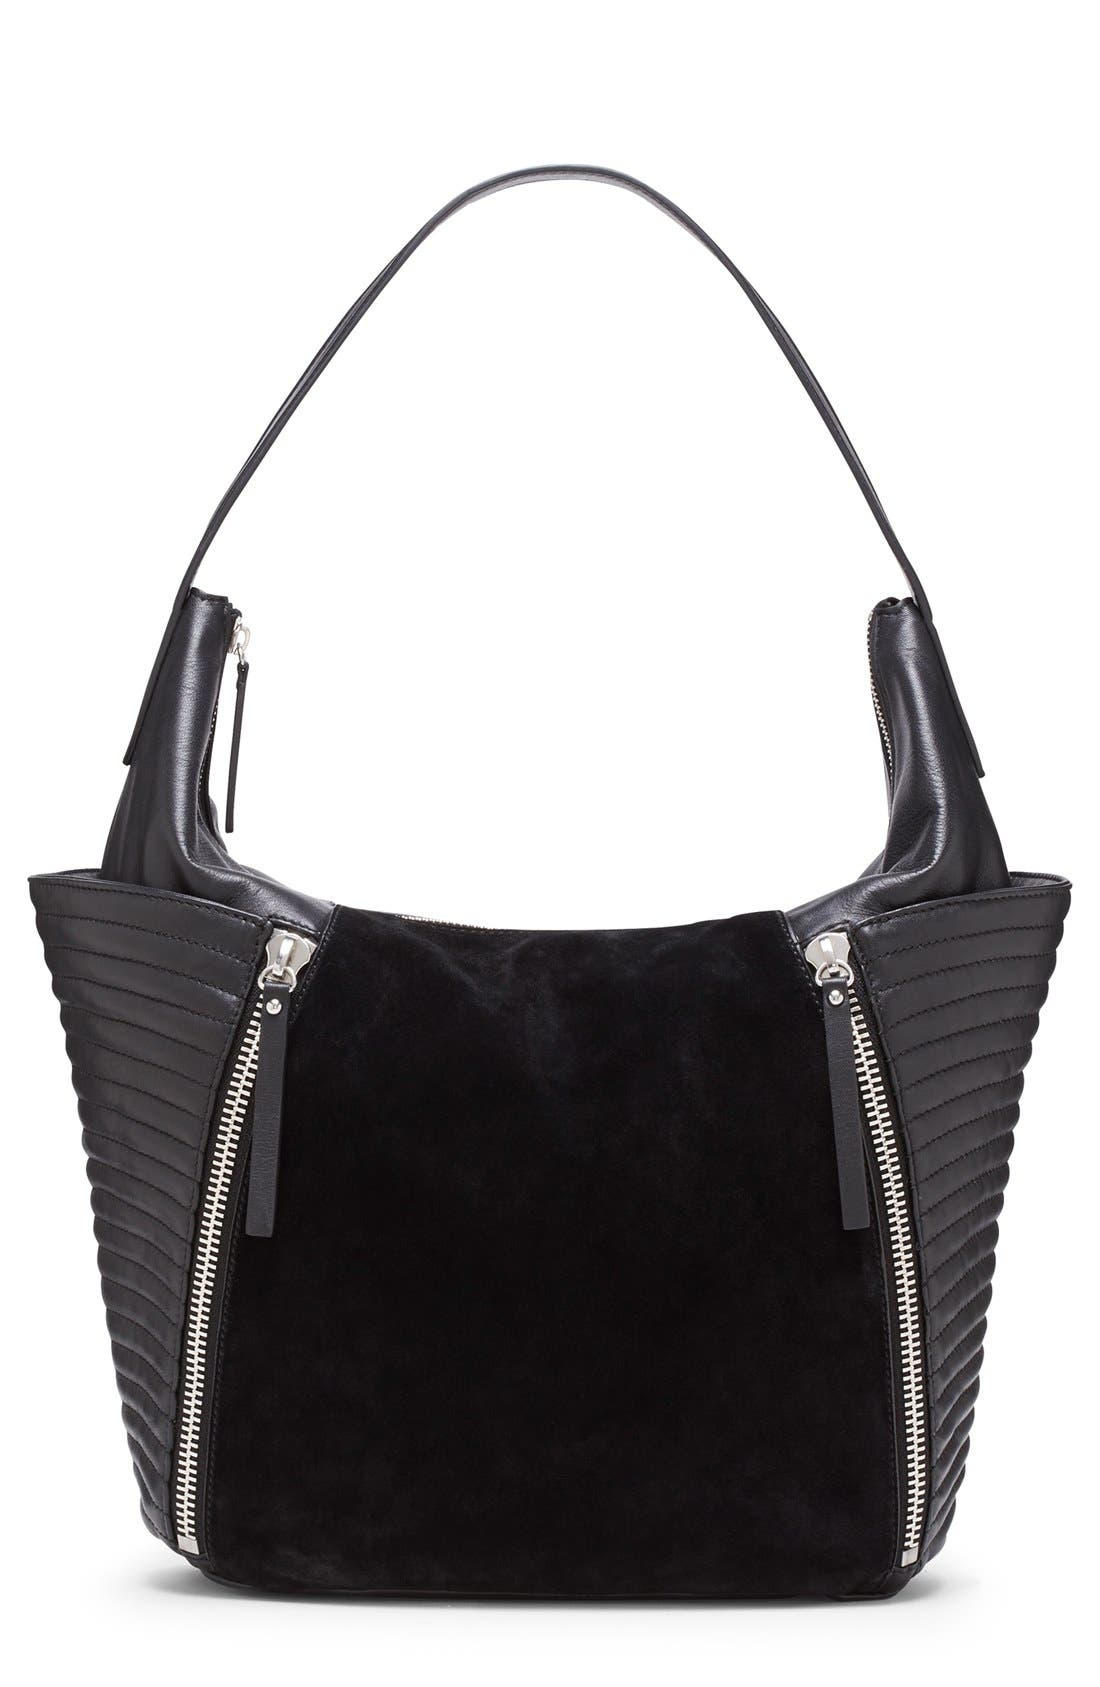 Alternate Image 1 Selected - Vince Camuto 'Baily' Hobo